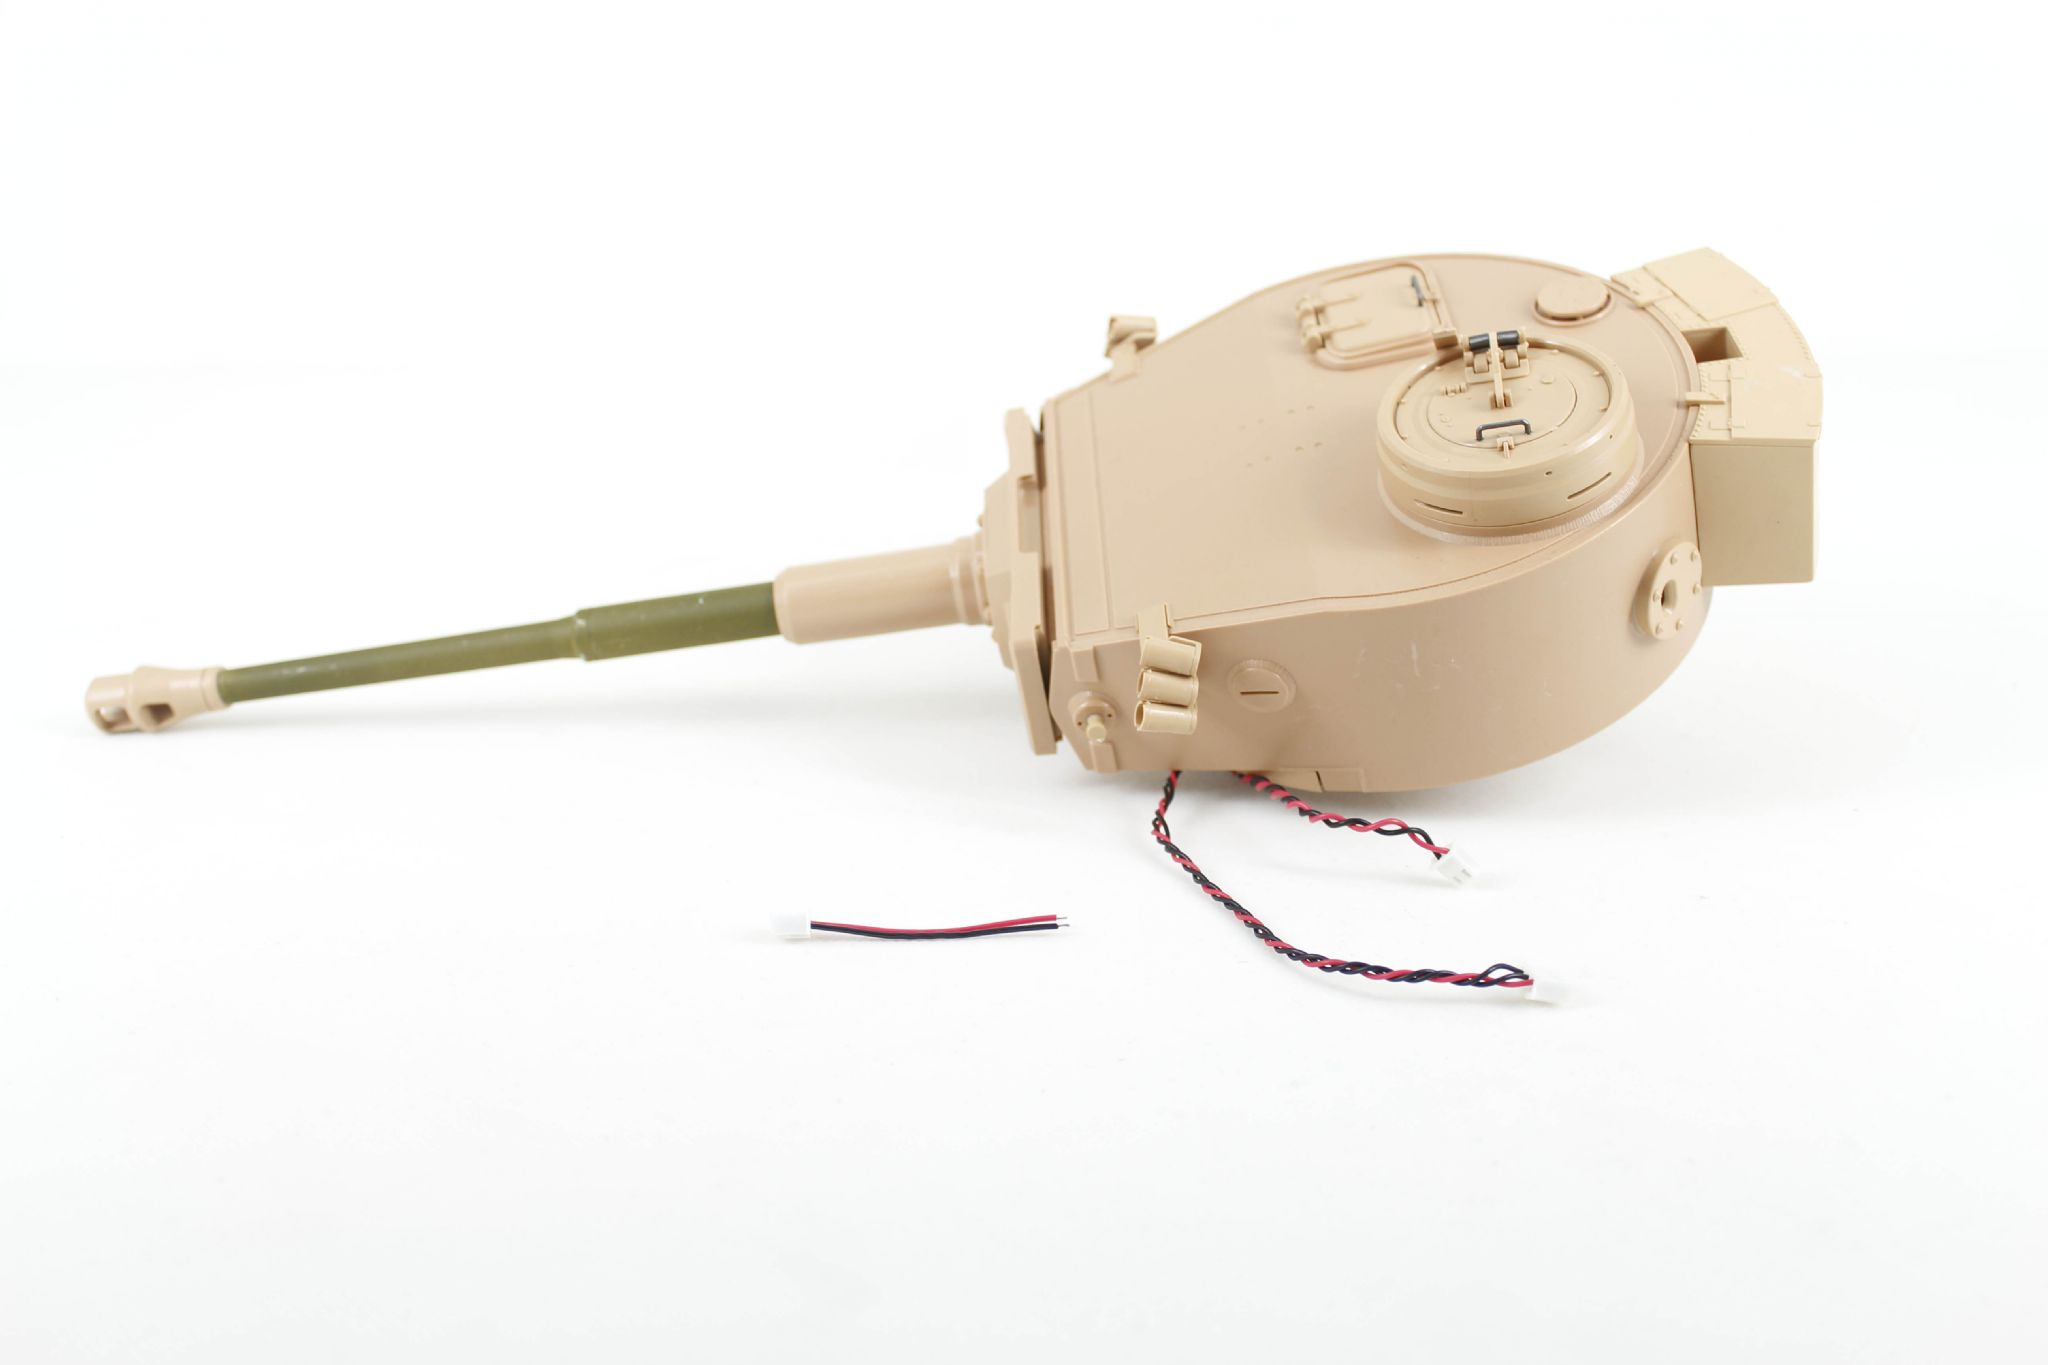 Taigen Tiger 1 plastic turret with servo recoil - airsoft